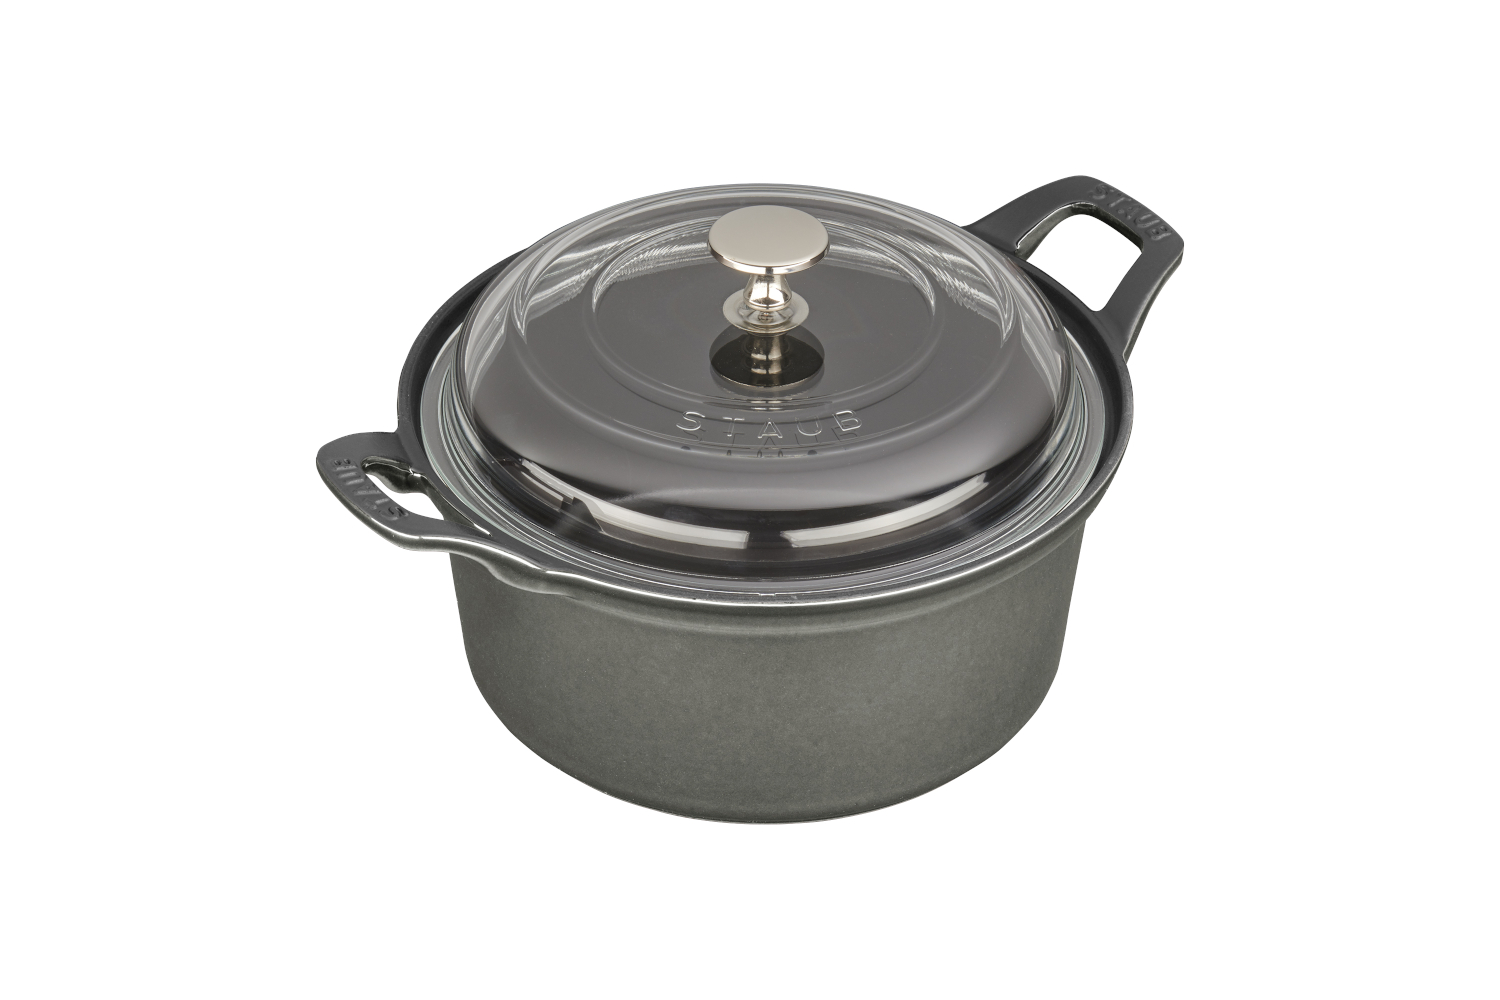 Staub Cast Iron 2 3/4 qt. Round La Coquette with Glass Lid - Graphite Grey